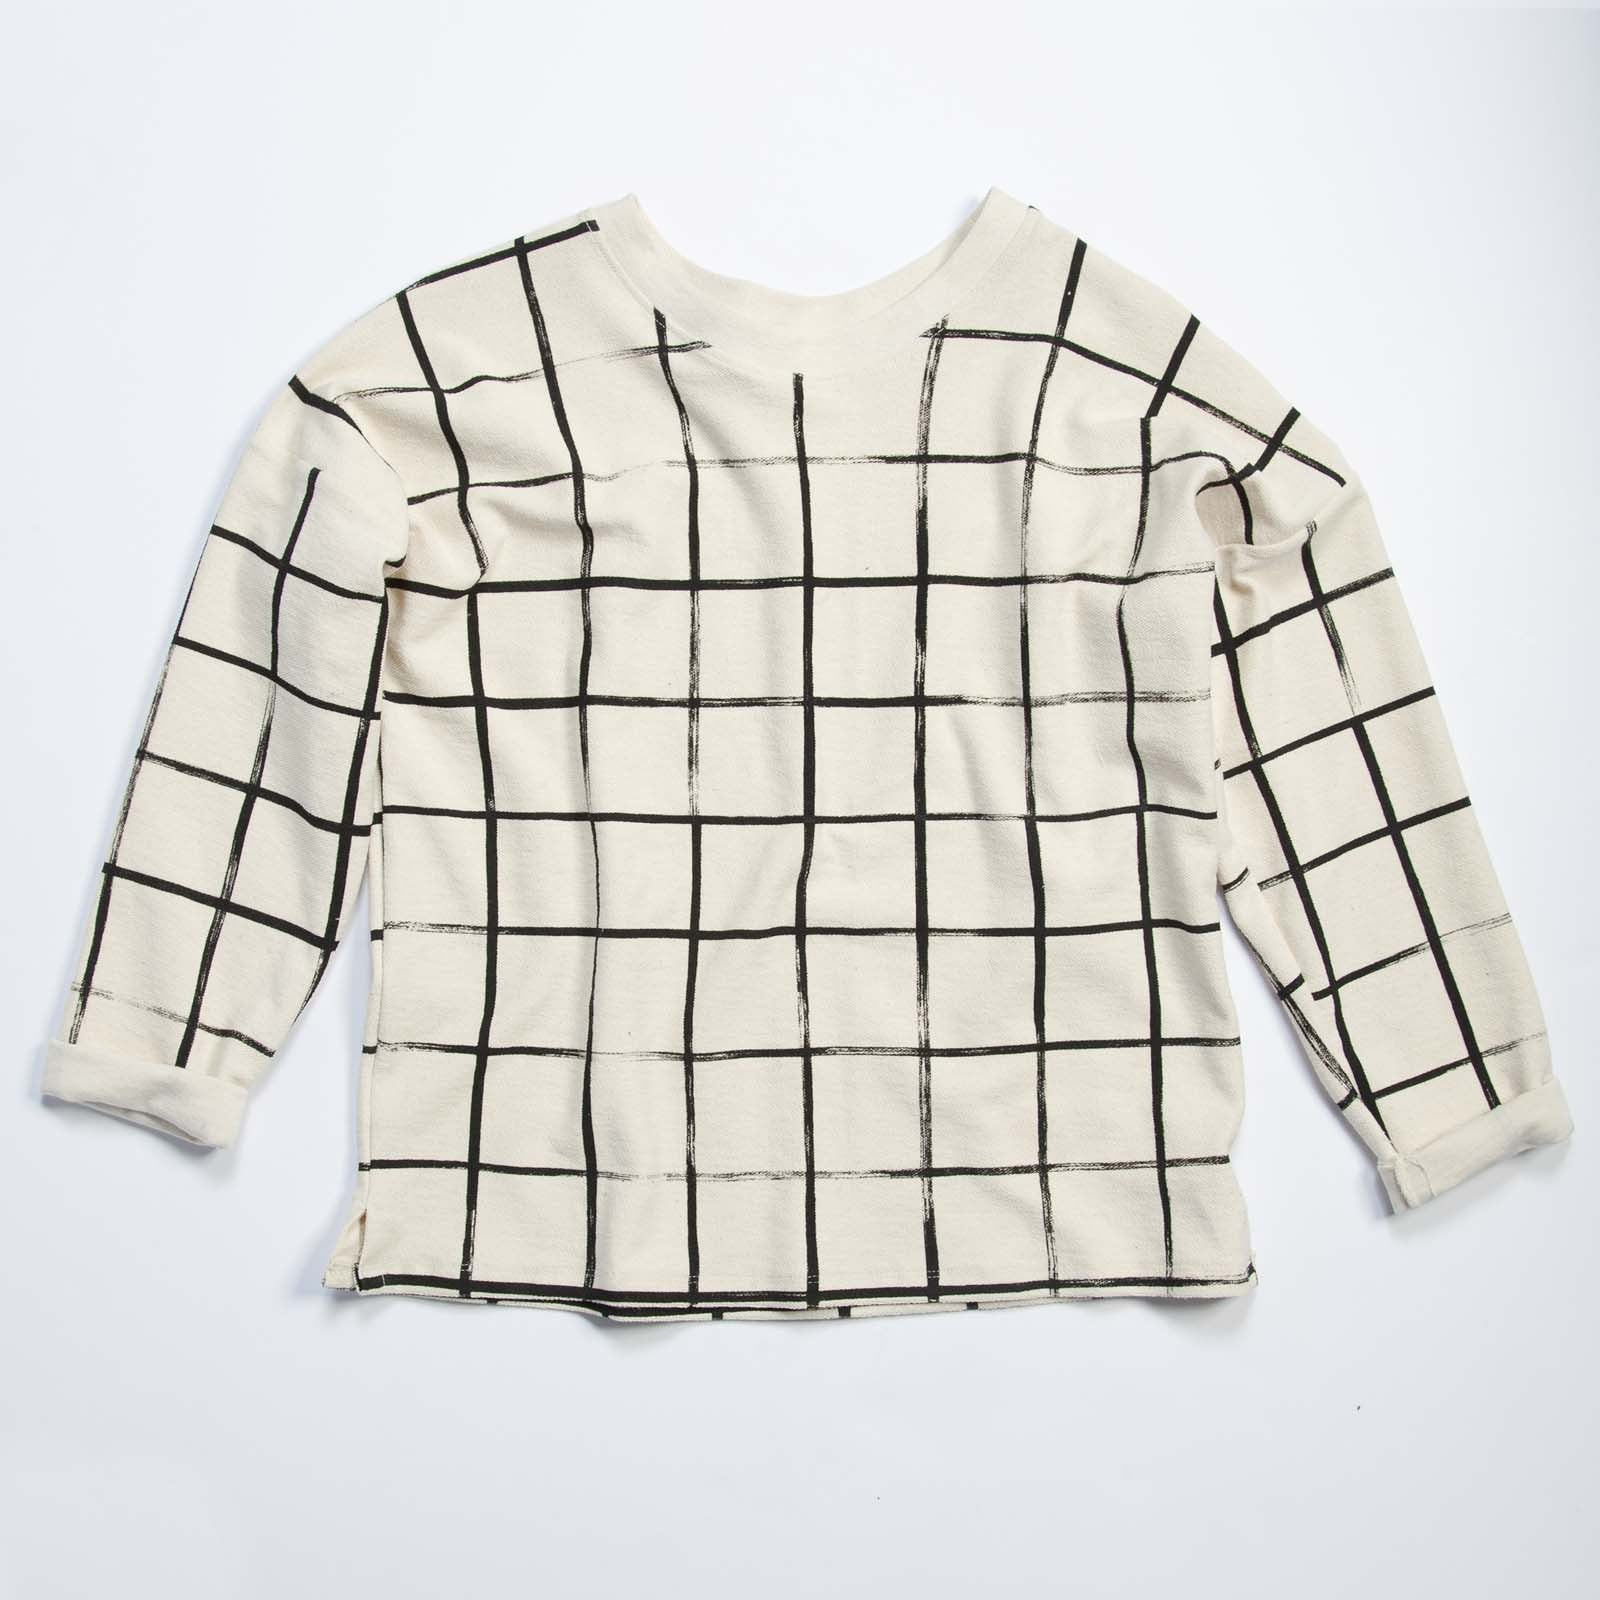 products/grid_white_sweatshirt_6293da42-ddb6-4b97-95fd-70588d361e45.jpg